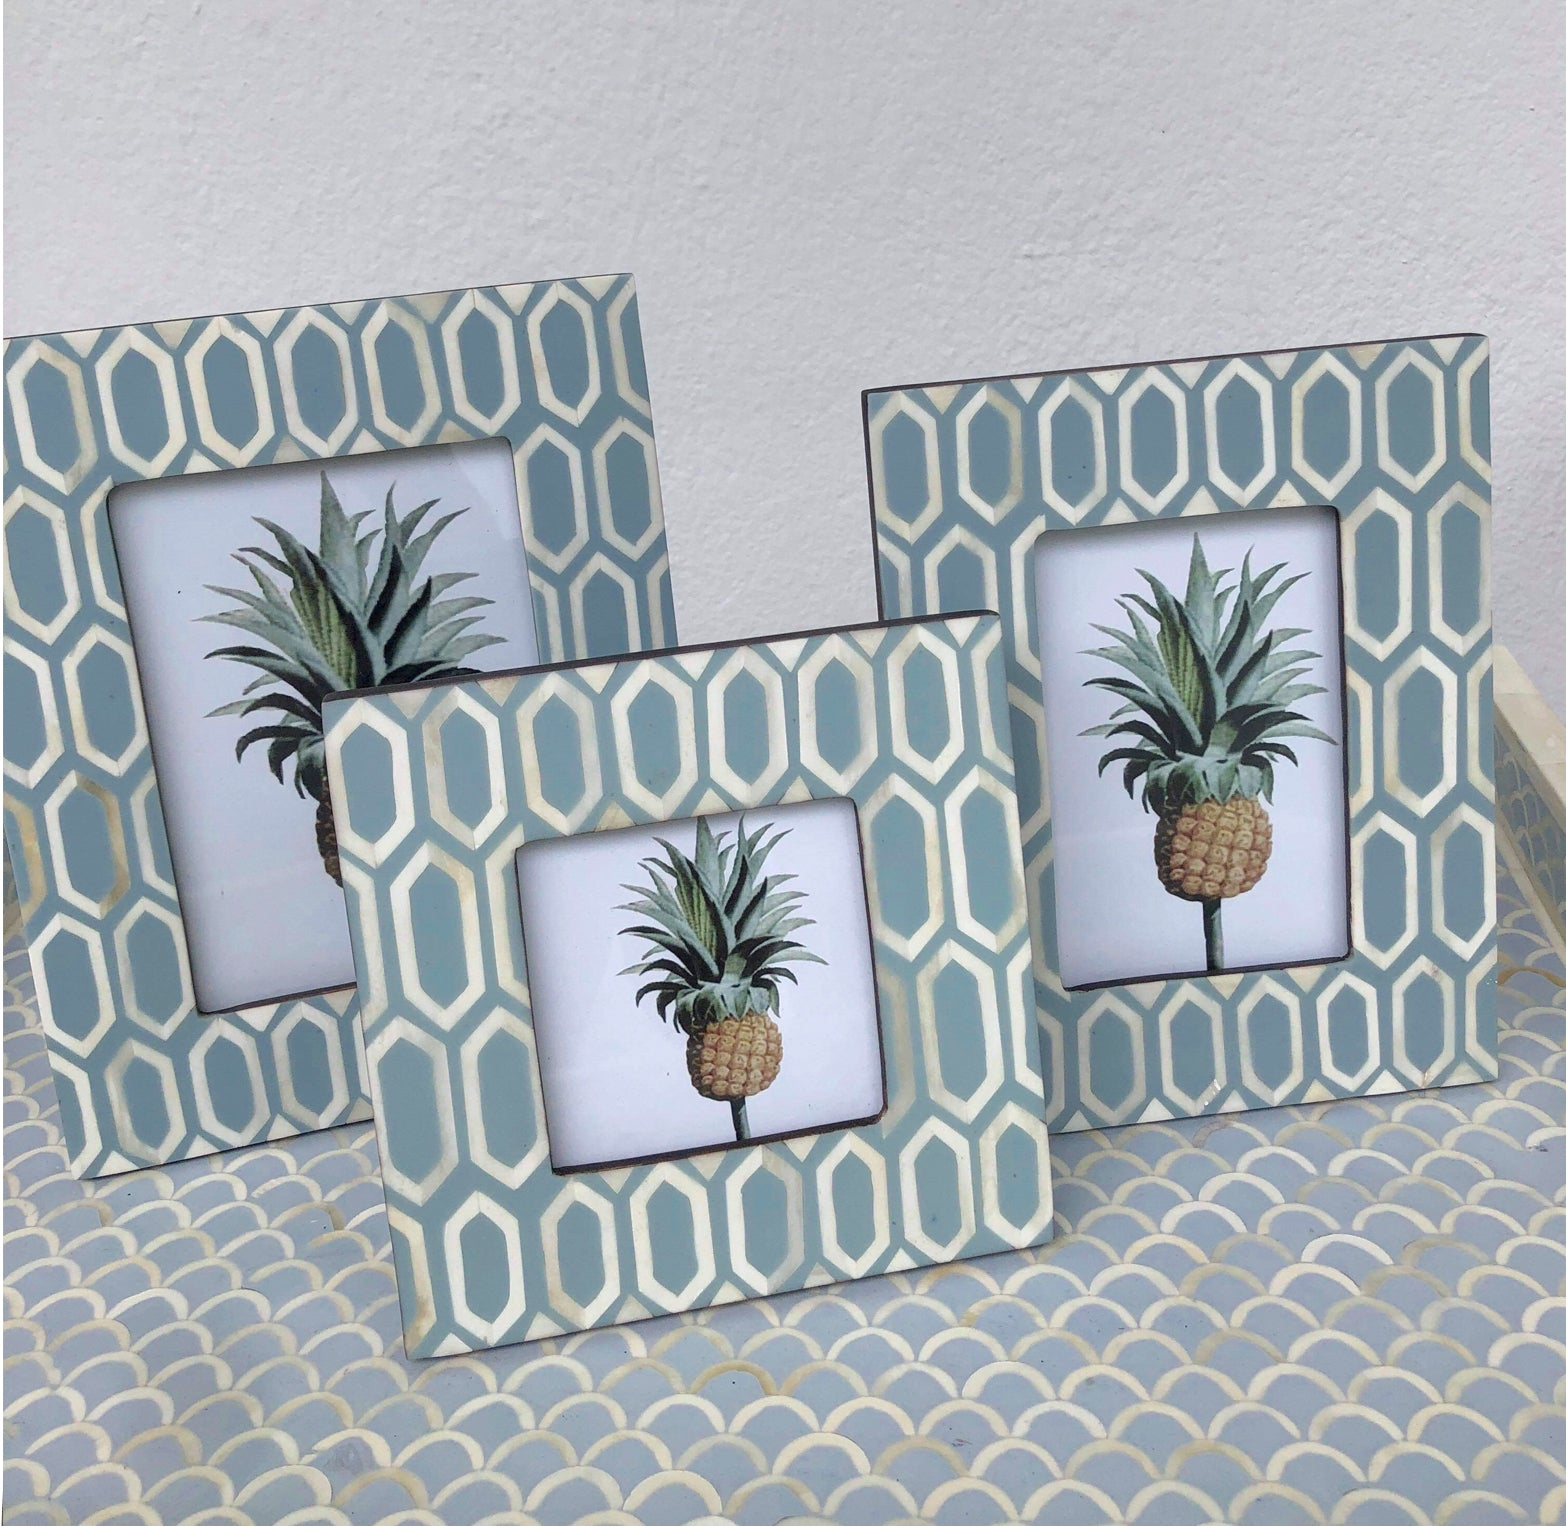 Hexagonal Pattern Photo Frame - Duck Egg Blue